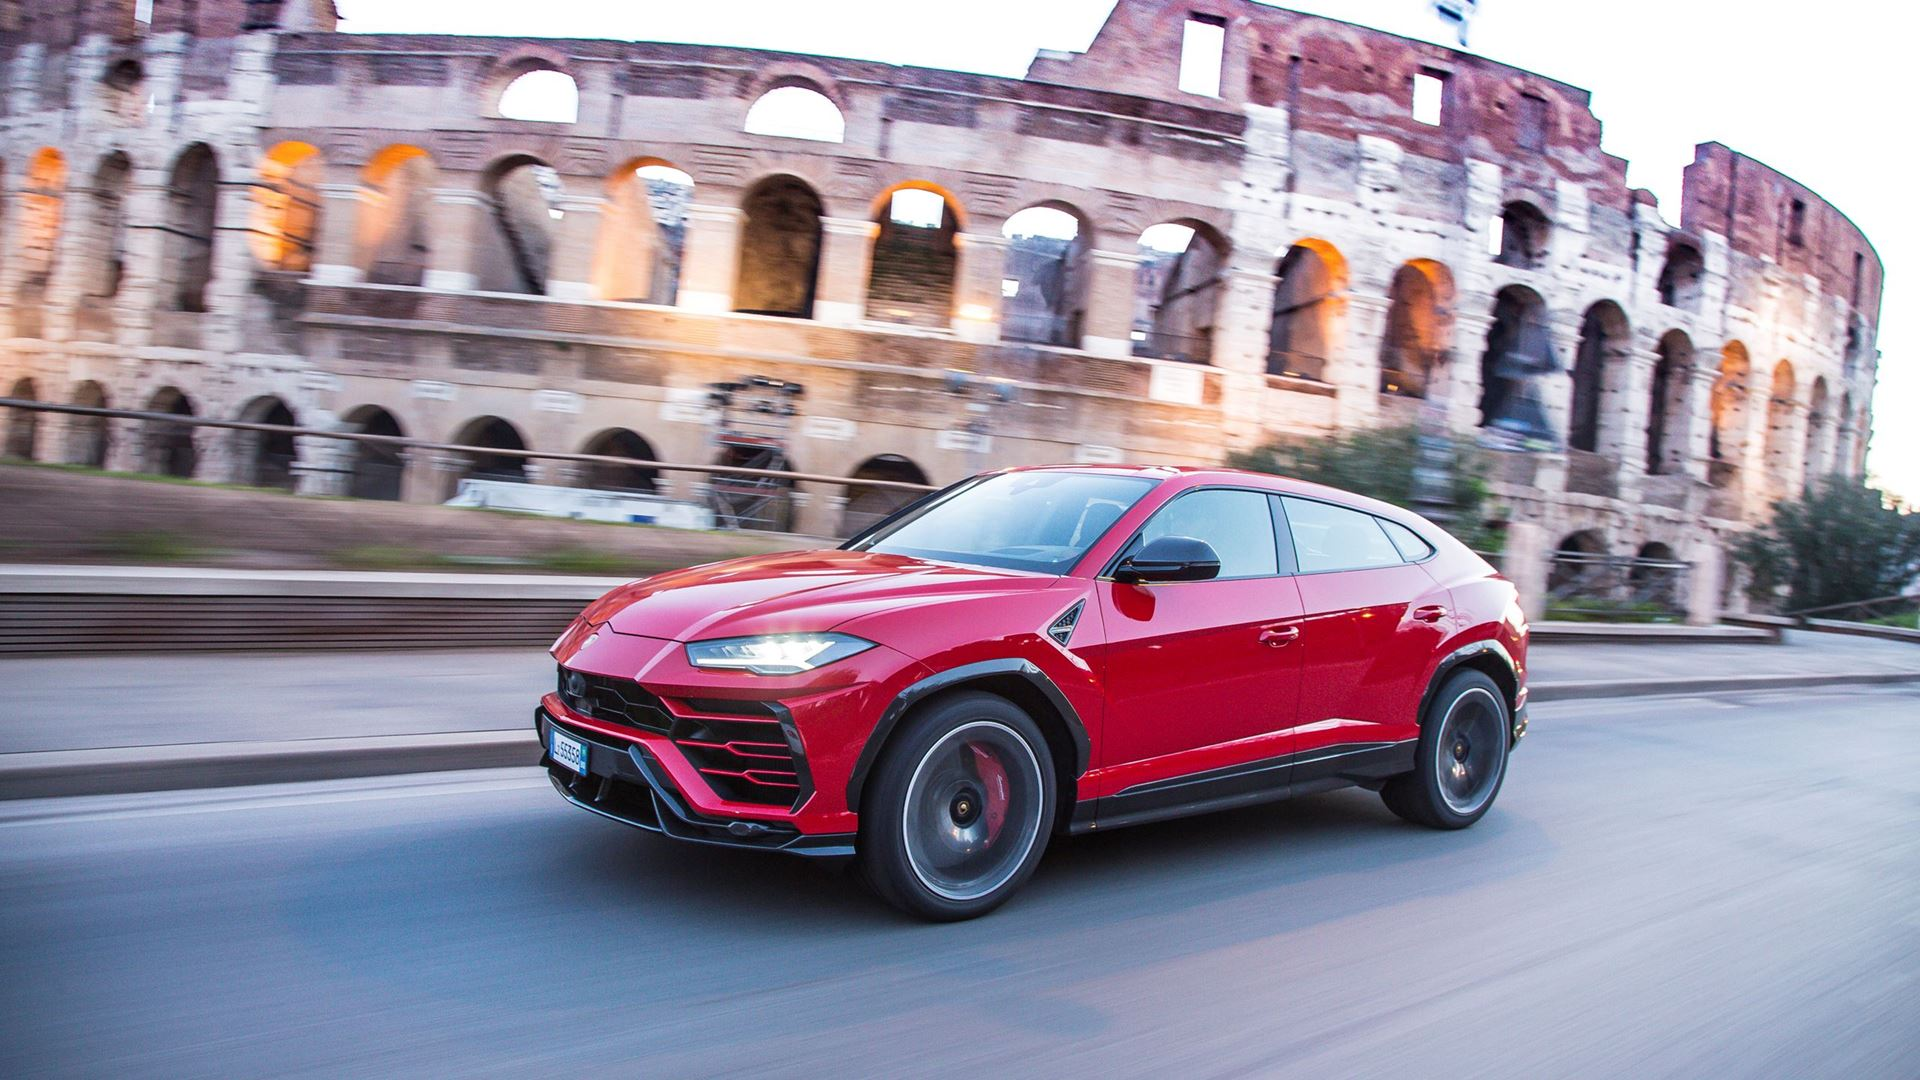 Lamborghini Urus: 6 driving modes to enjoy the Super SUV in 6 different ways - Image 7